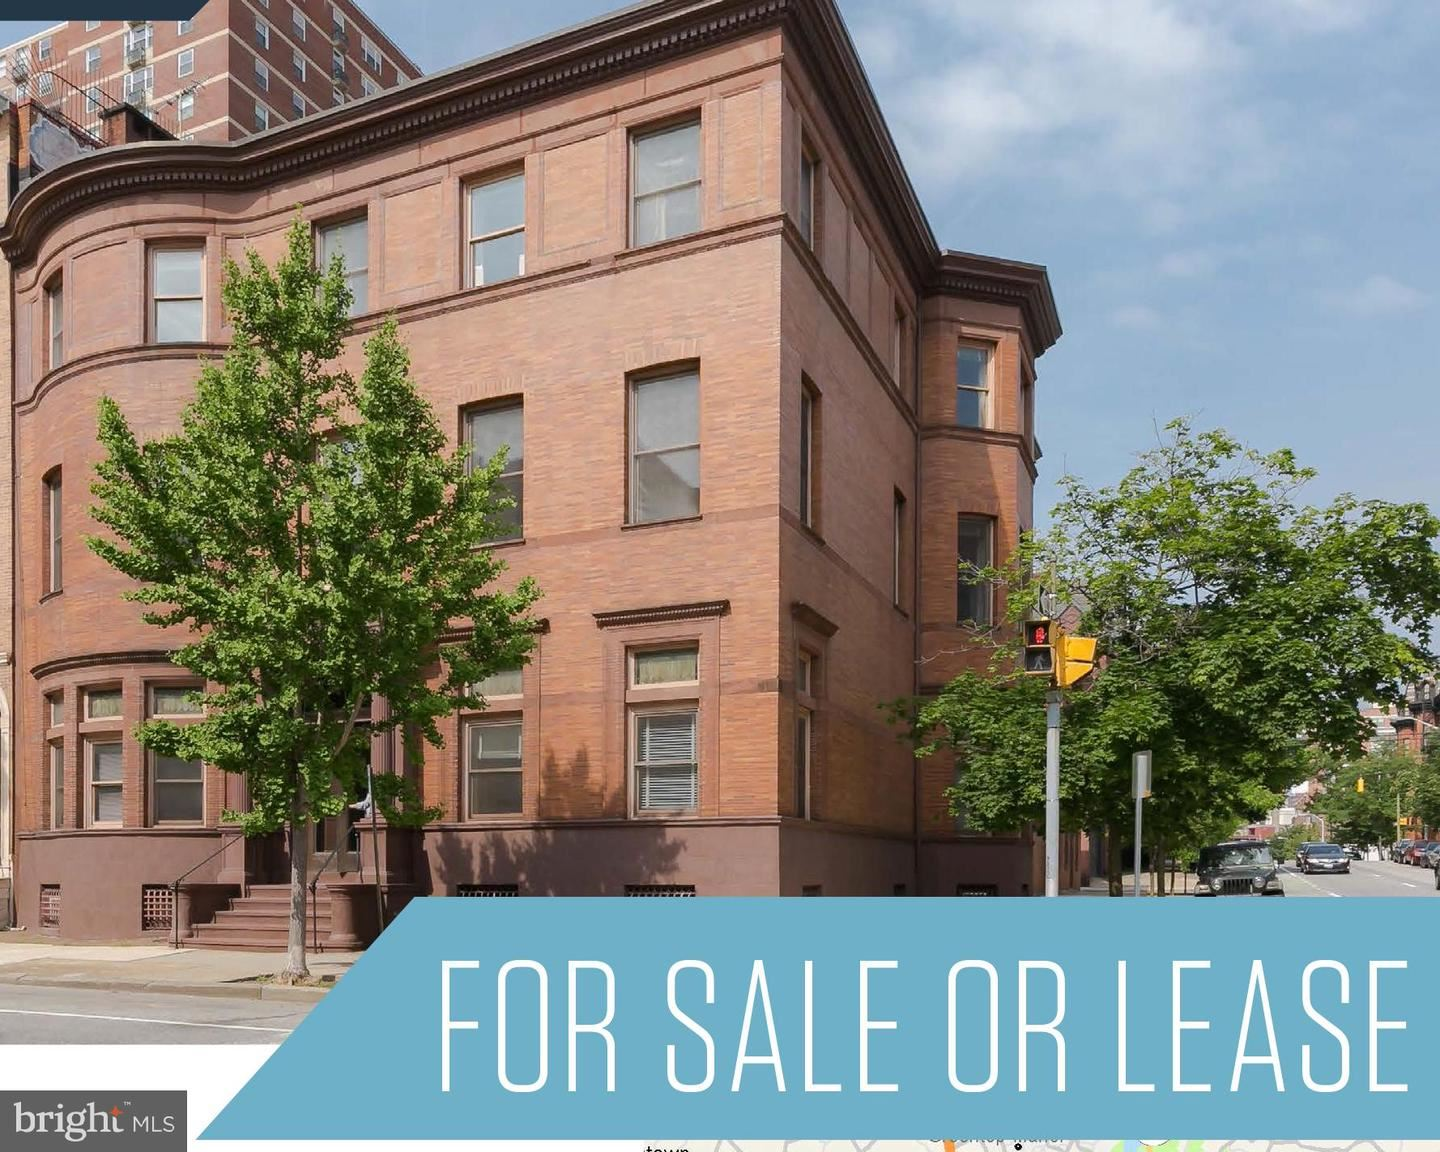 1128 N CALVERT ST, Baltimore, MD 21202 - MLS#: MDBA540832